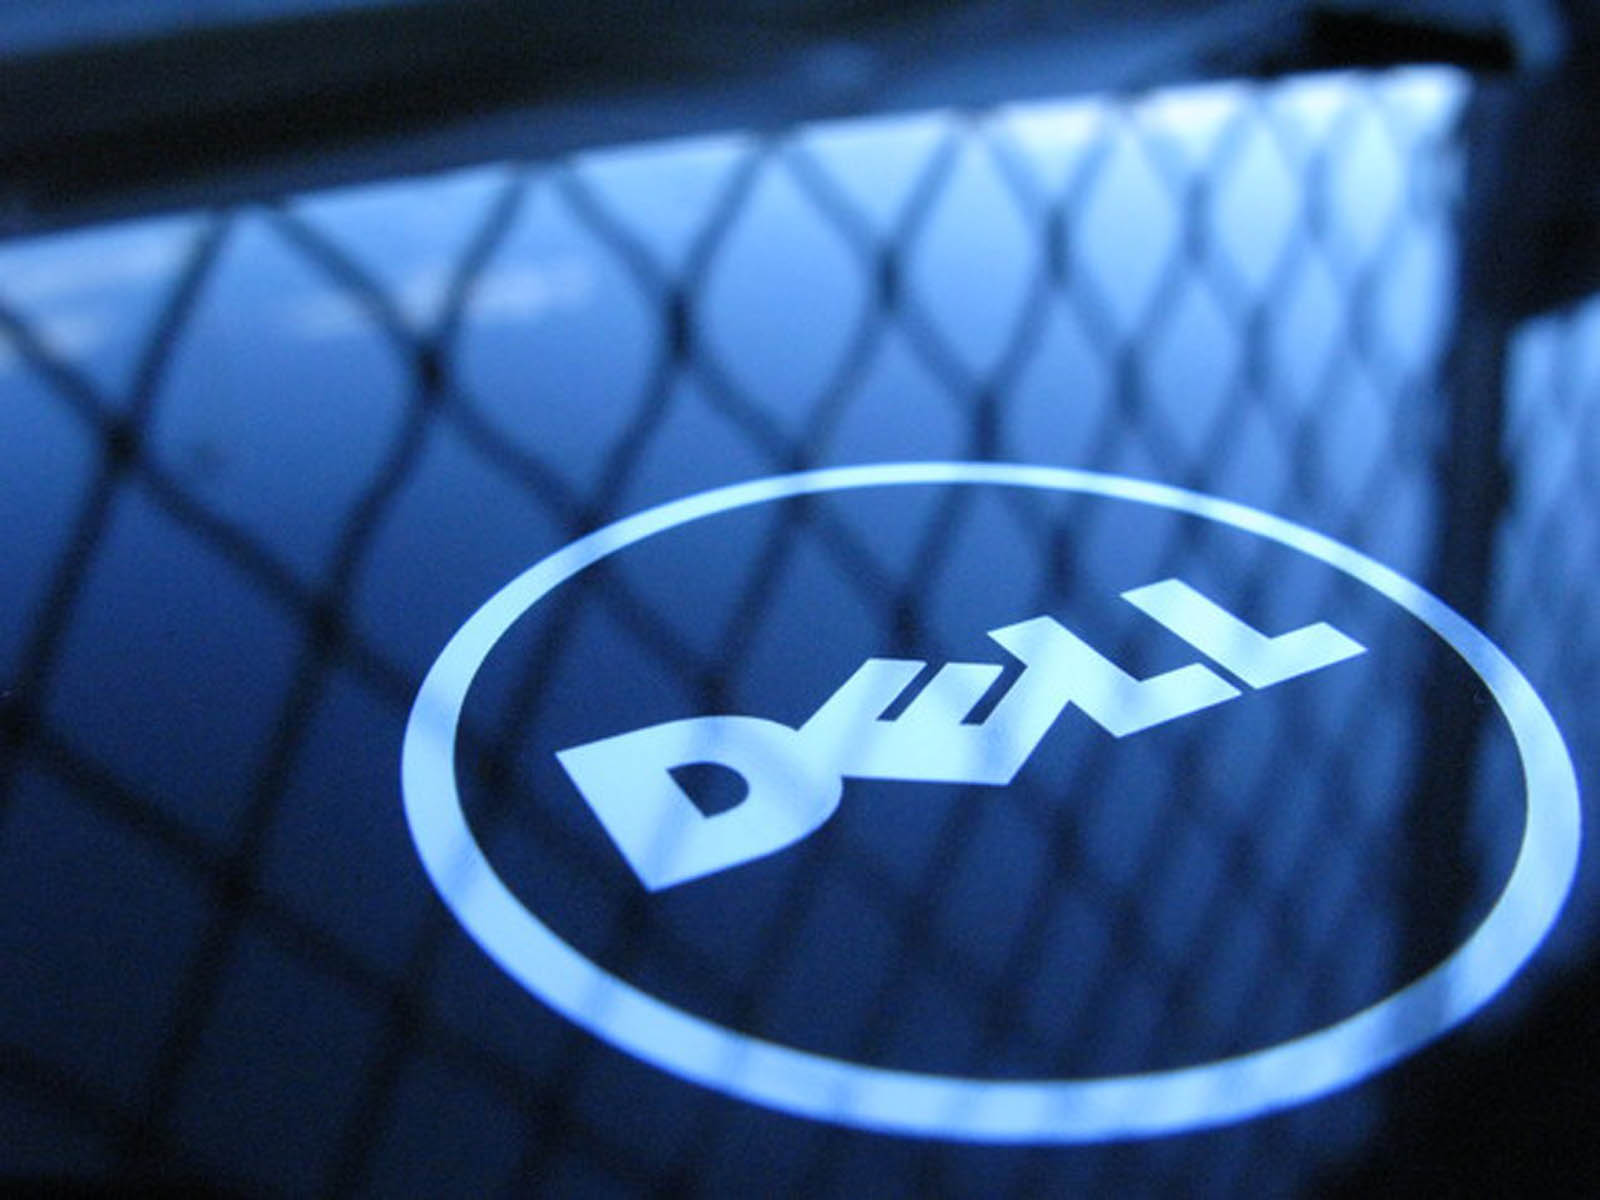 download the Dell Wallpapers Dell Desktop Wallpapers Dell 1600x1200